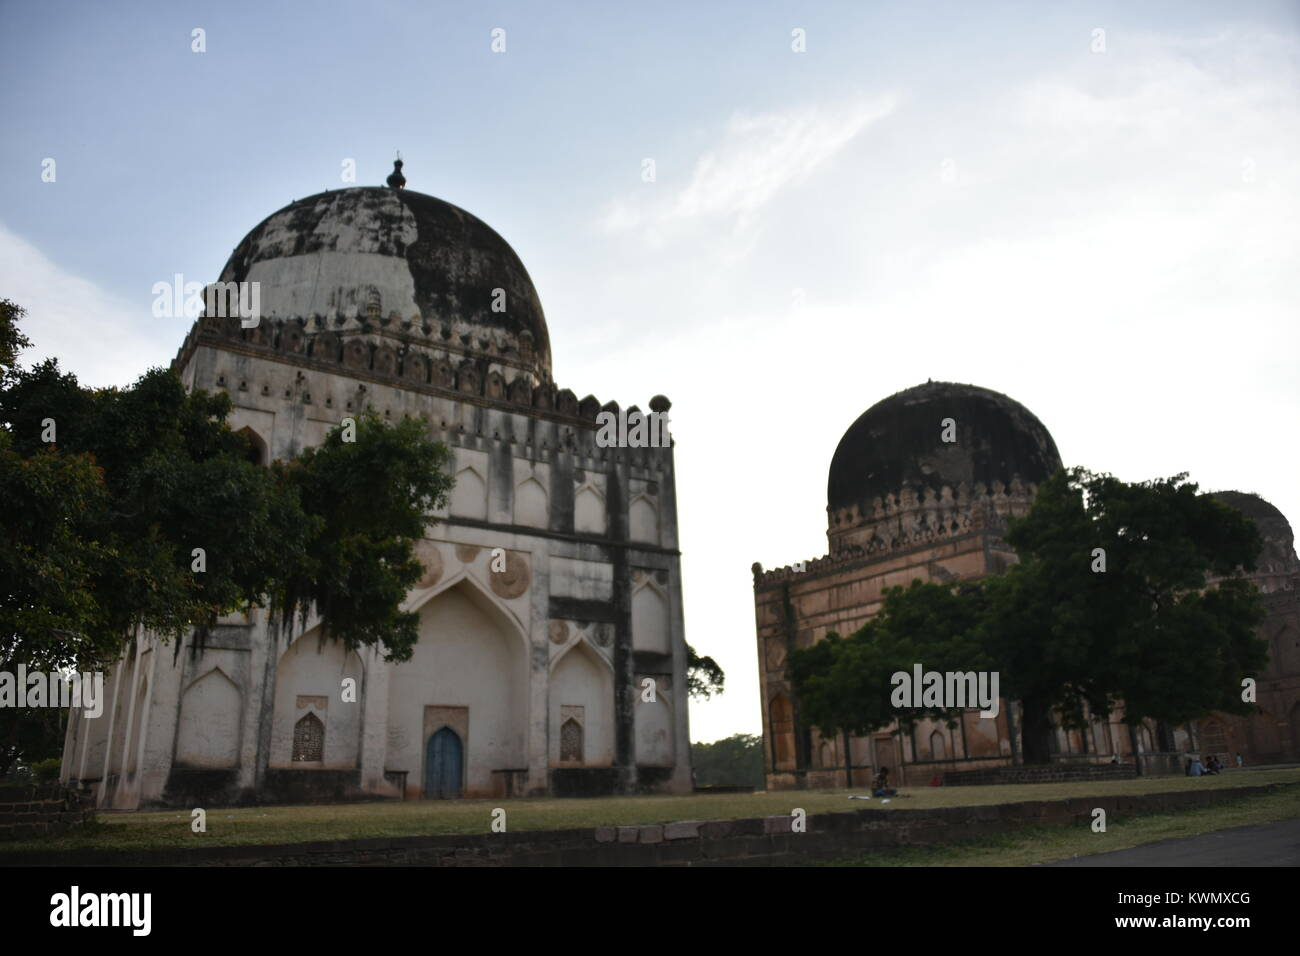 The tombs of Bahamani rulers, Bidar, Karnataka, India - Stock Image